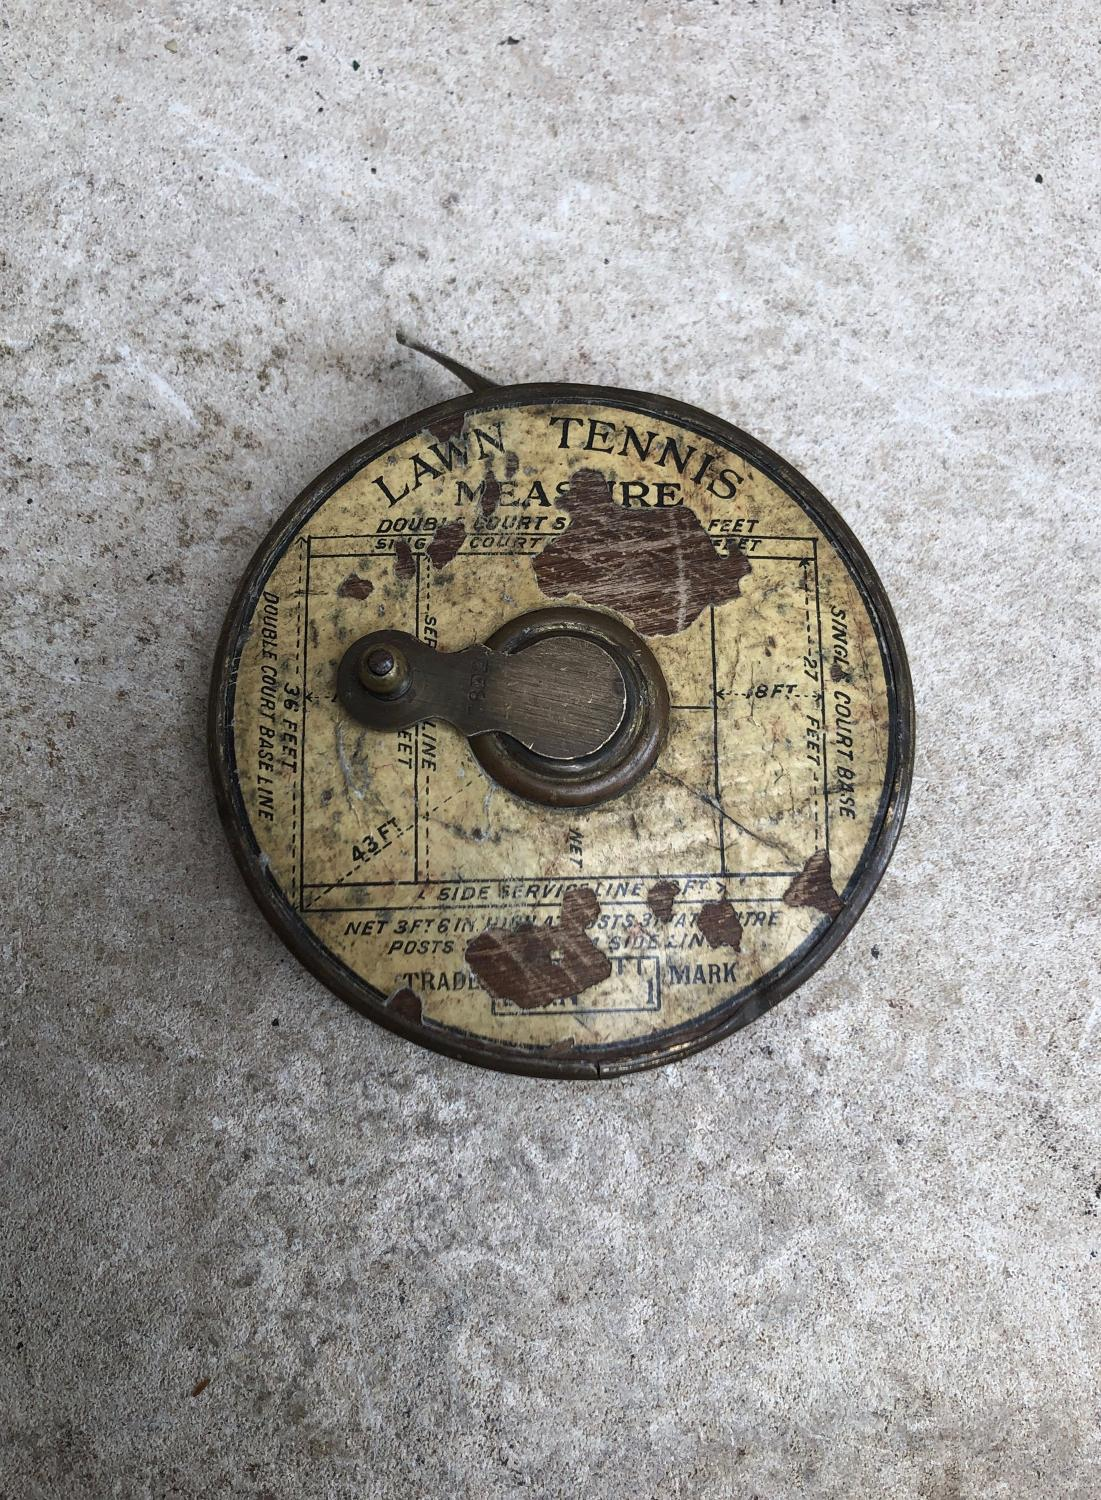 Rare Early 20th Century Lawn Tennis Tape Measure